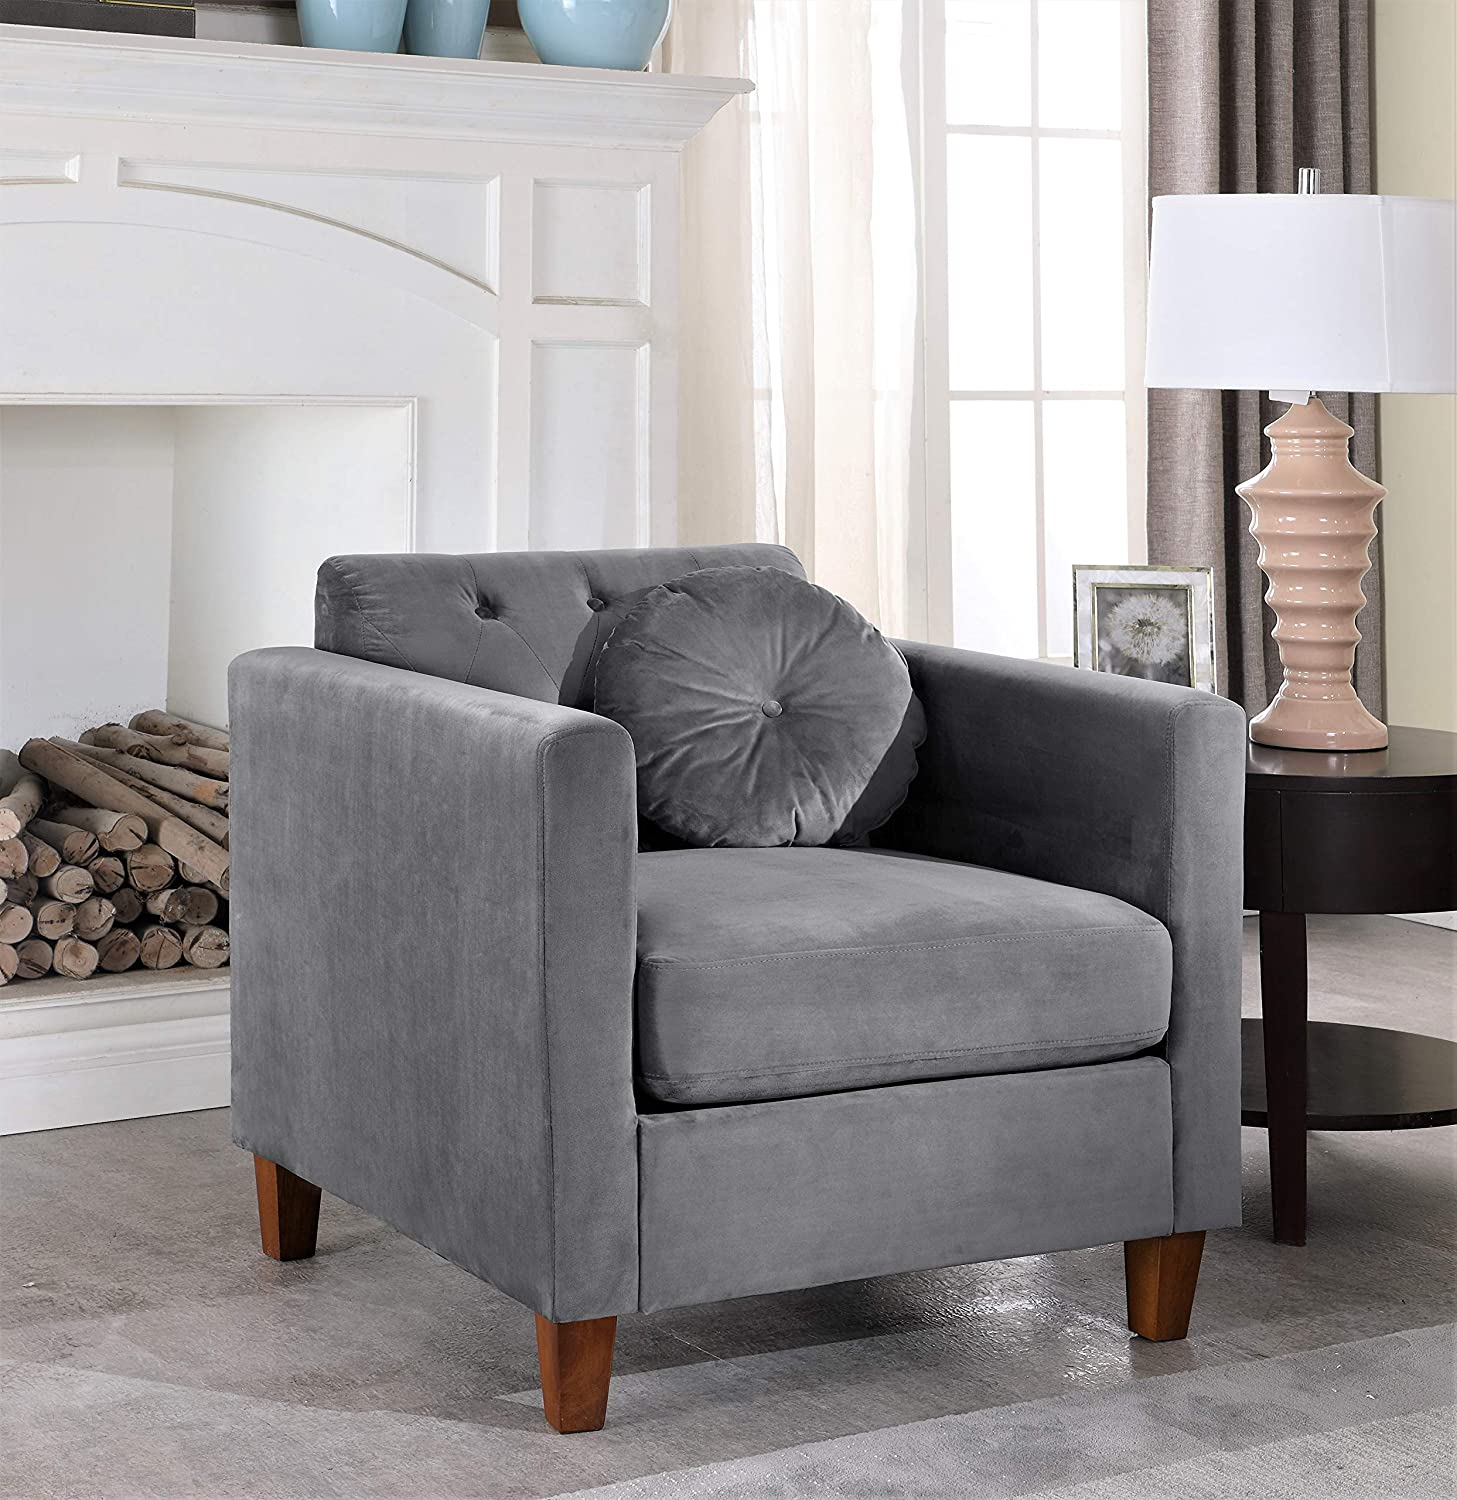 Beige Loveseat and Chair Set Container Furniture Direct Kitts Classic Chesterfield Upholstered Sofa